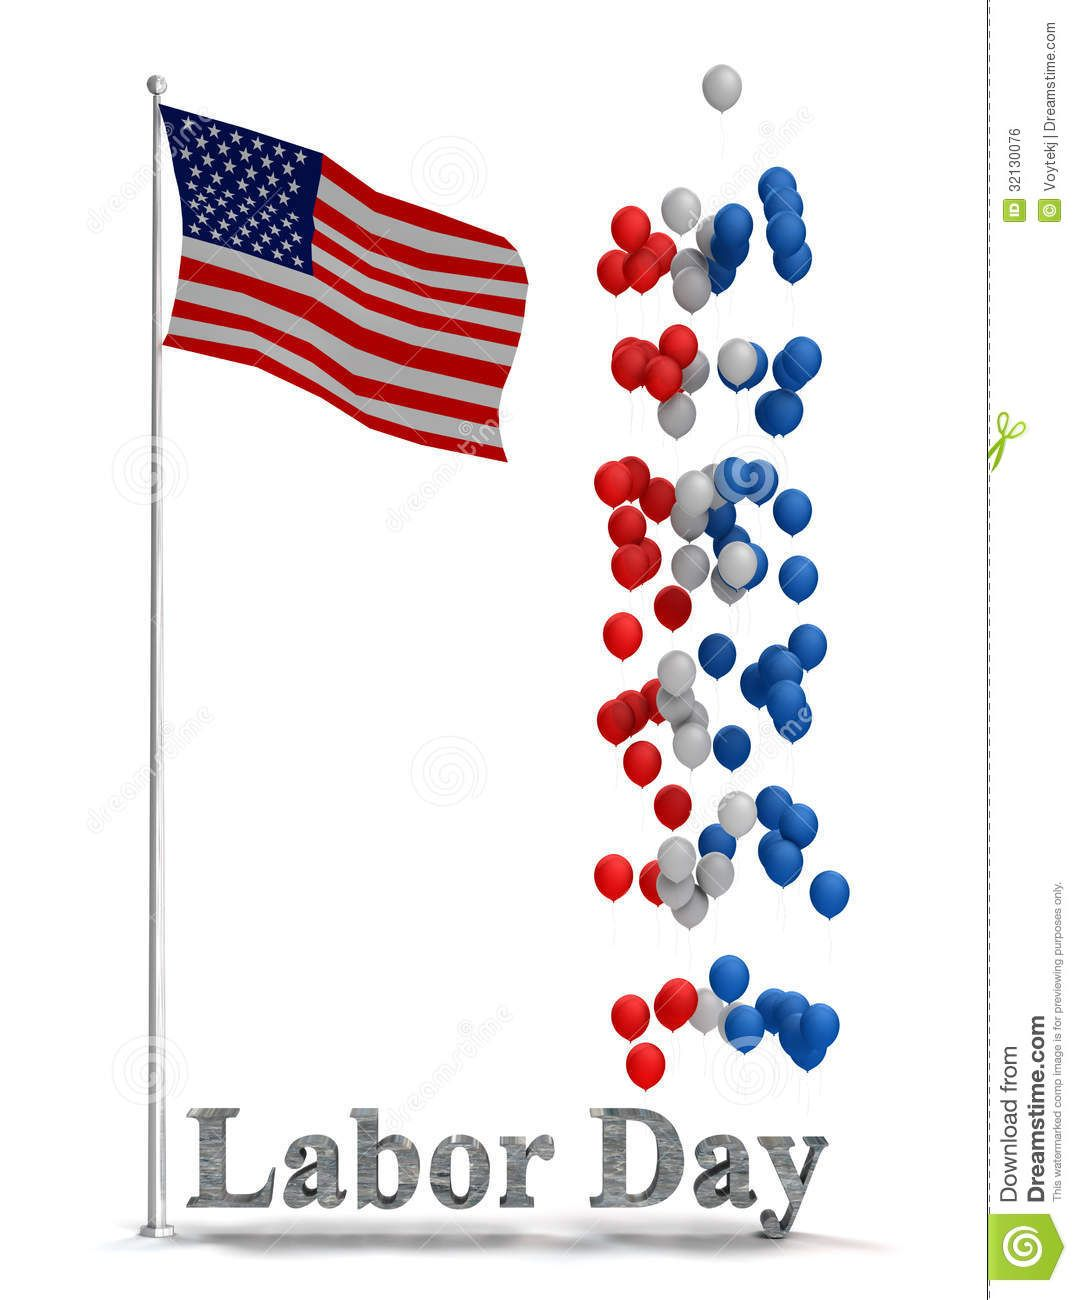 Watermark memorial day clipart vector library library Labor Day Clipart Border 2014, Labor Day 2014 Clip art ... vector library library